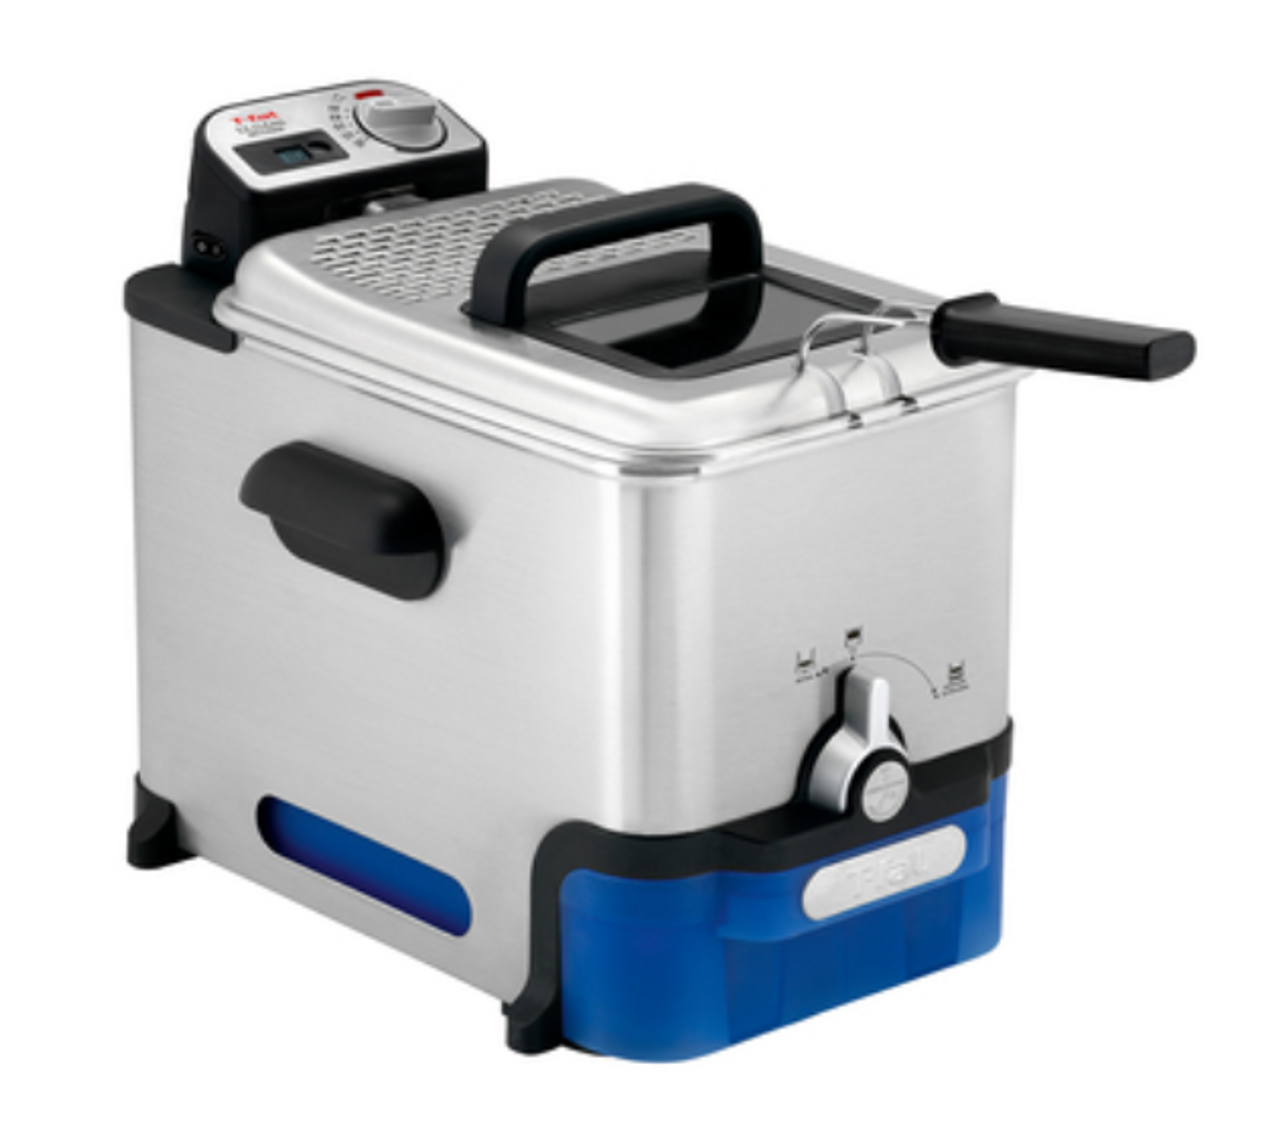 Tefal FR8040 Oleoclean Pro Deep Fryer with Automatic Oil Filtration System